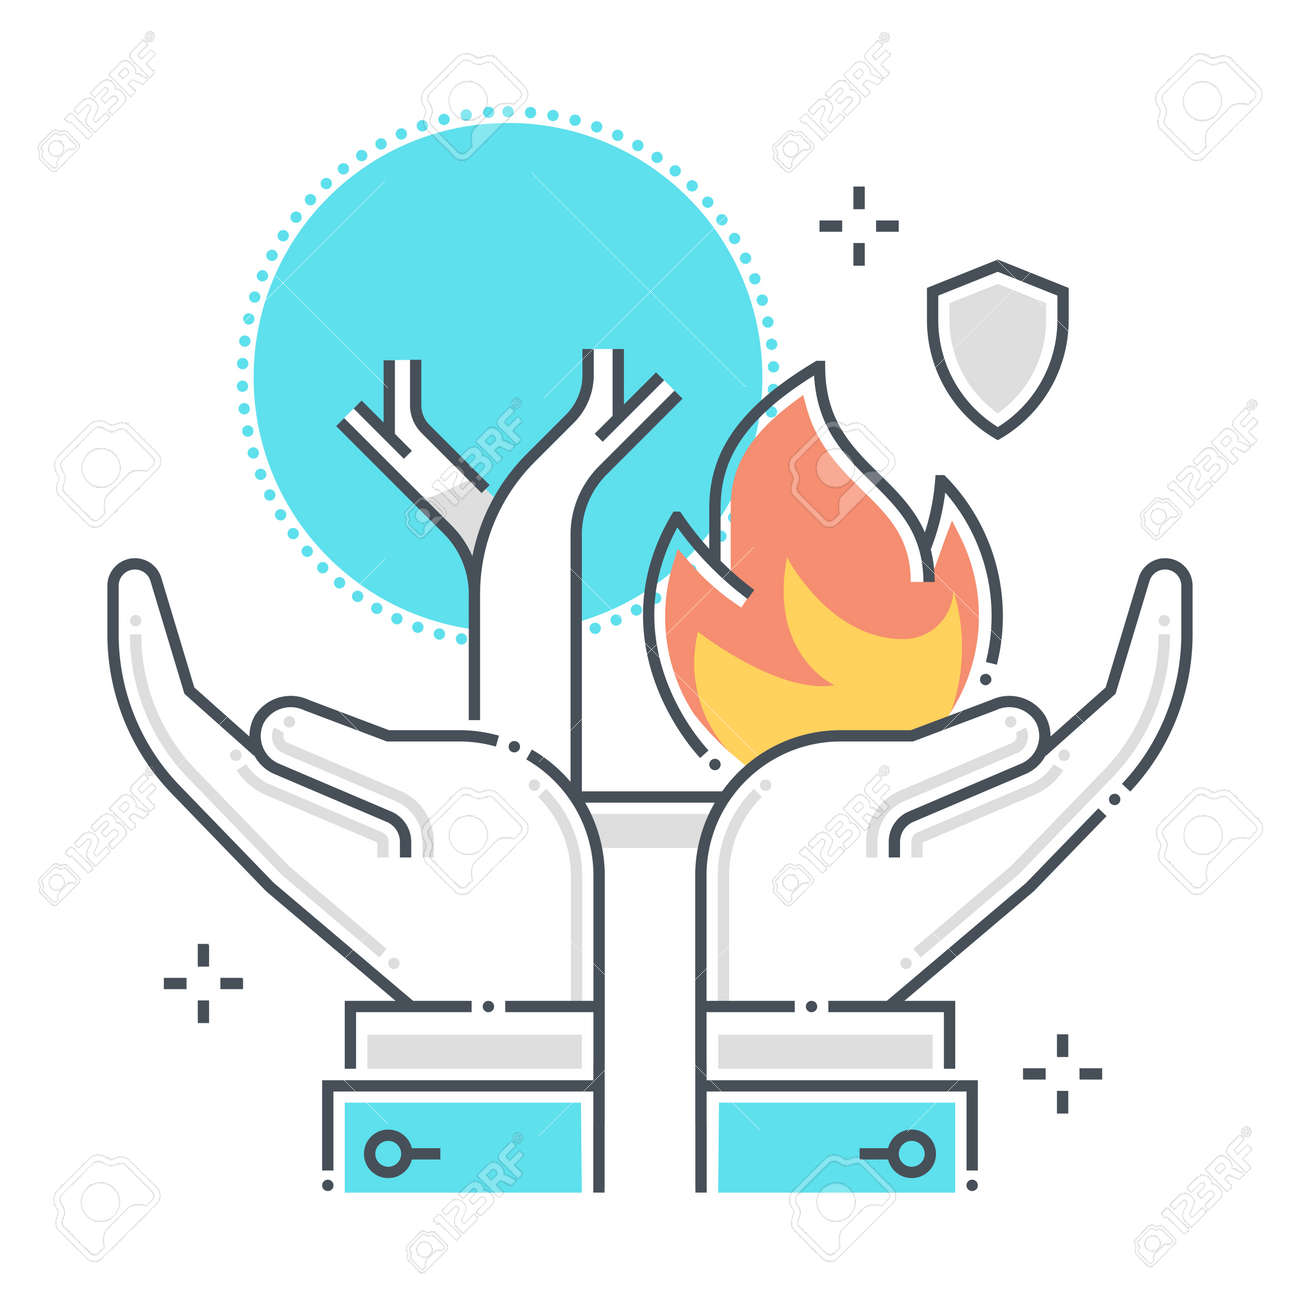 Natural disaster related color line vector icon, illustration. The icon is about assurance, tree, forest, ecology, hands. The composition is infinitely scalable. - 163698308